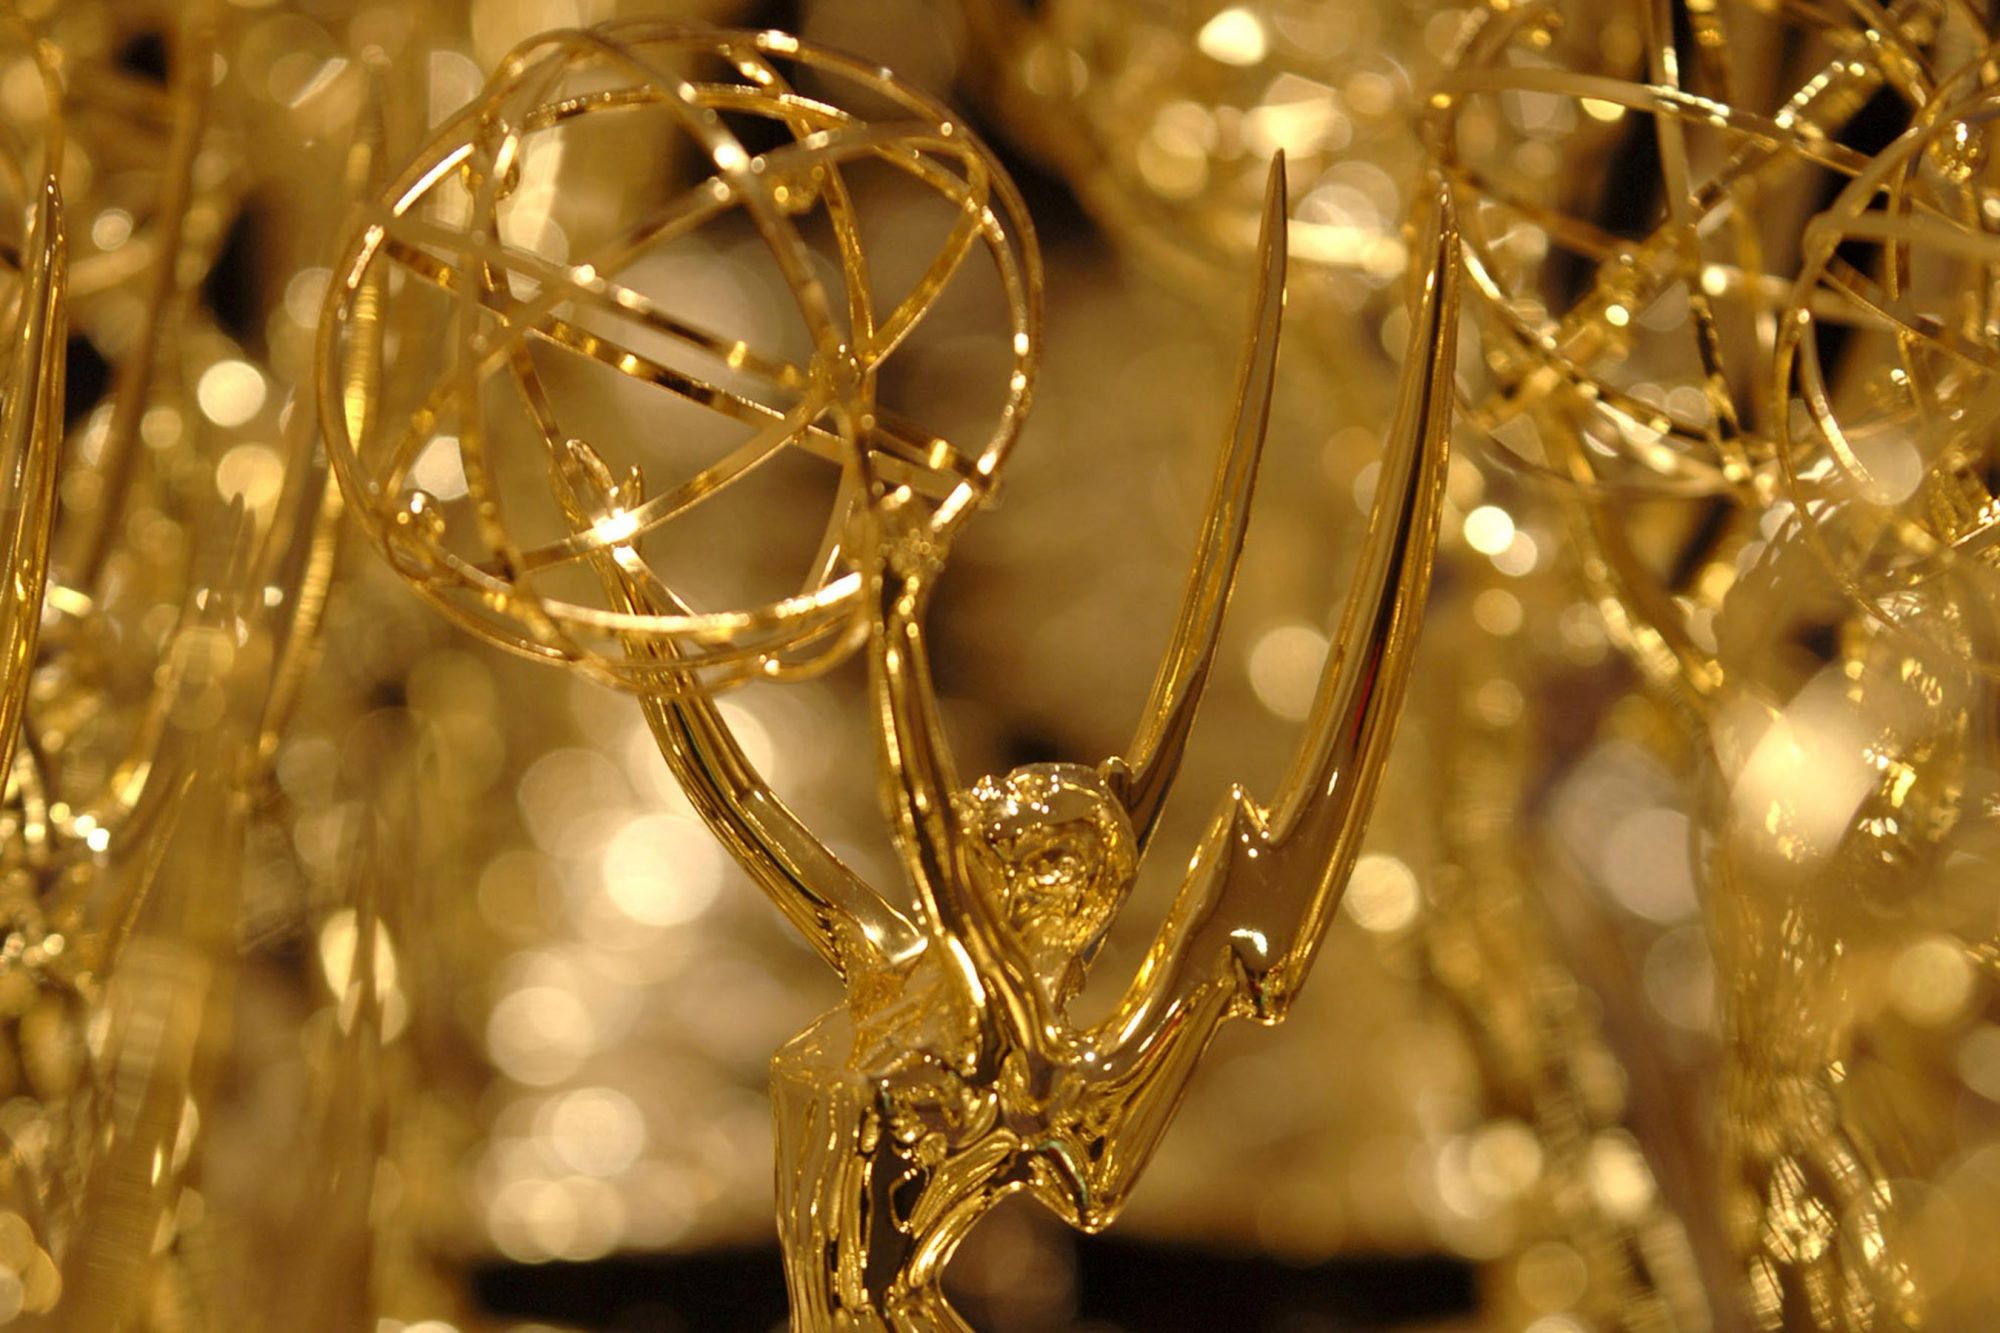 32nd Annual Daytime Emmy Craft Awards - Technical Awards Show